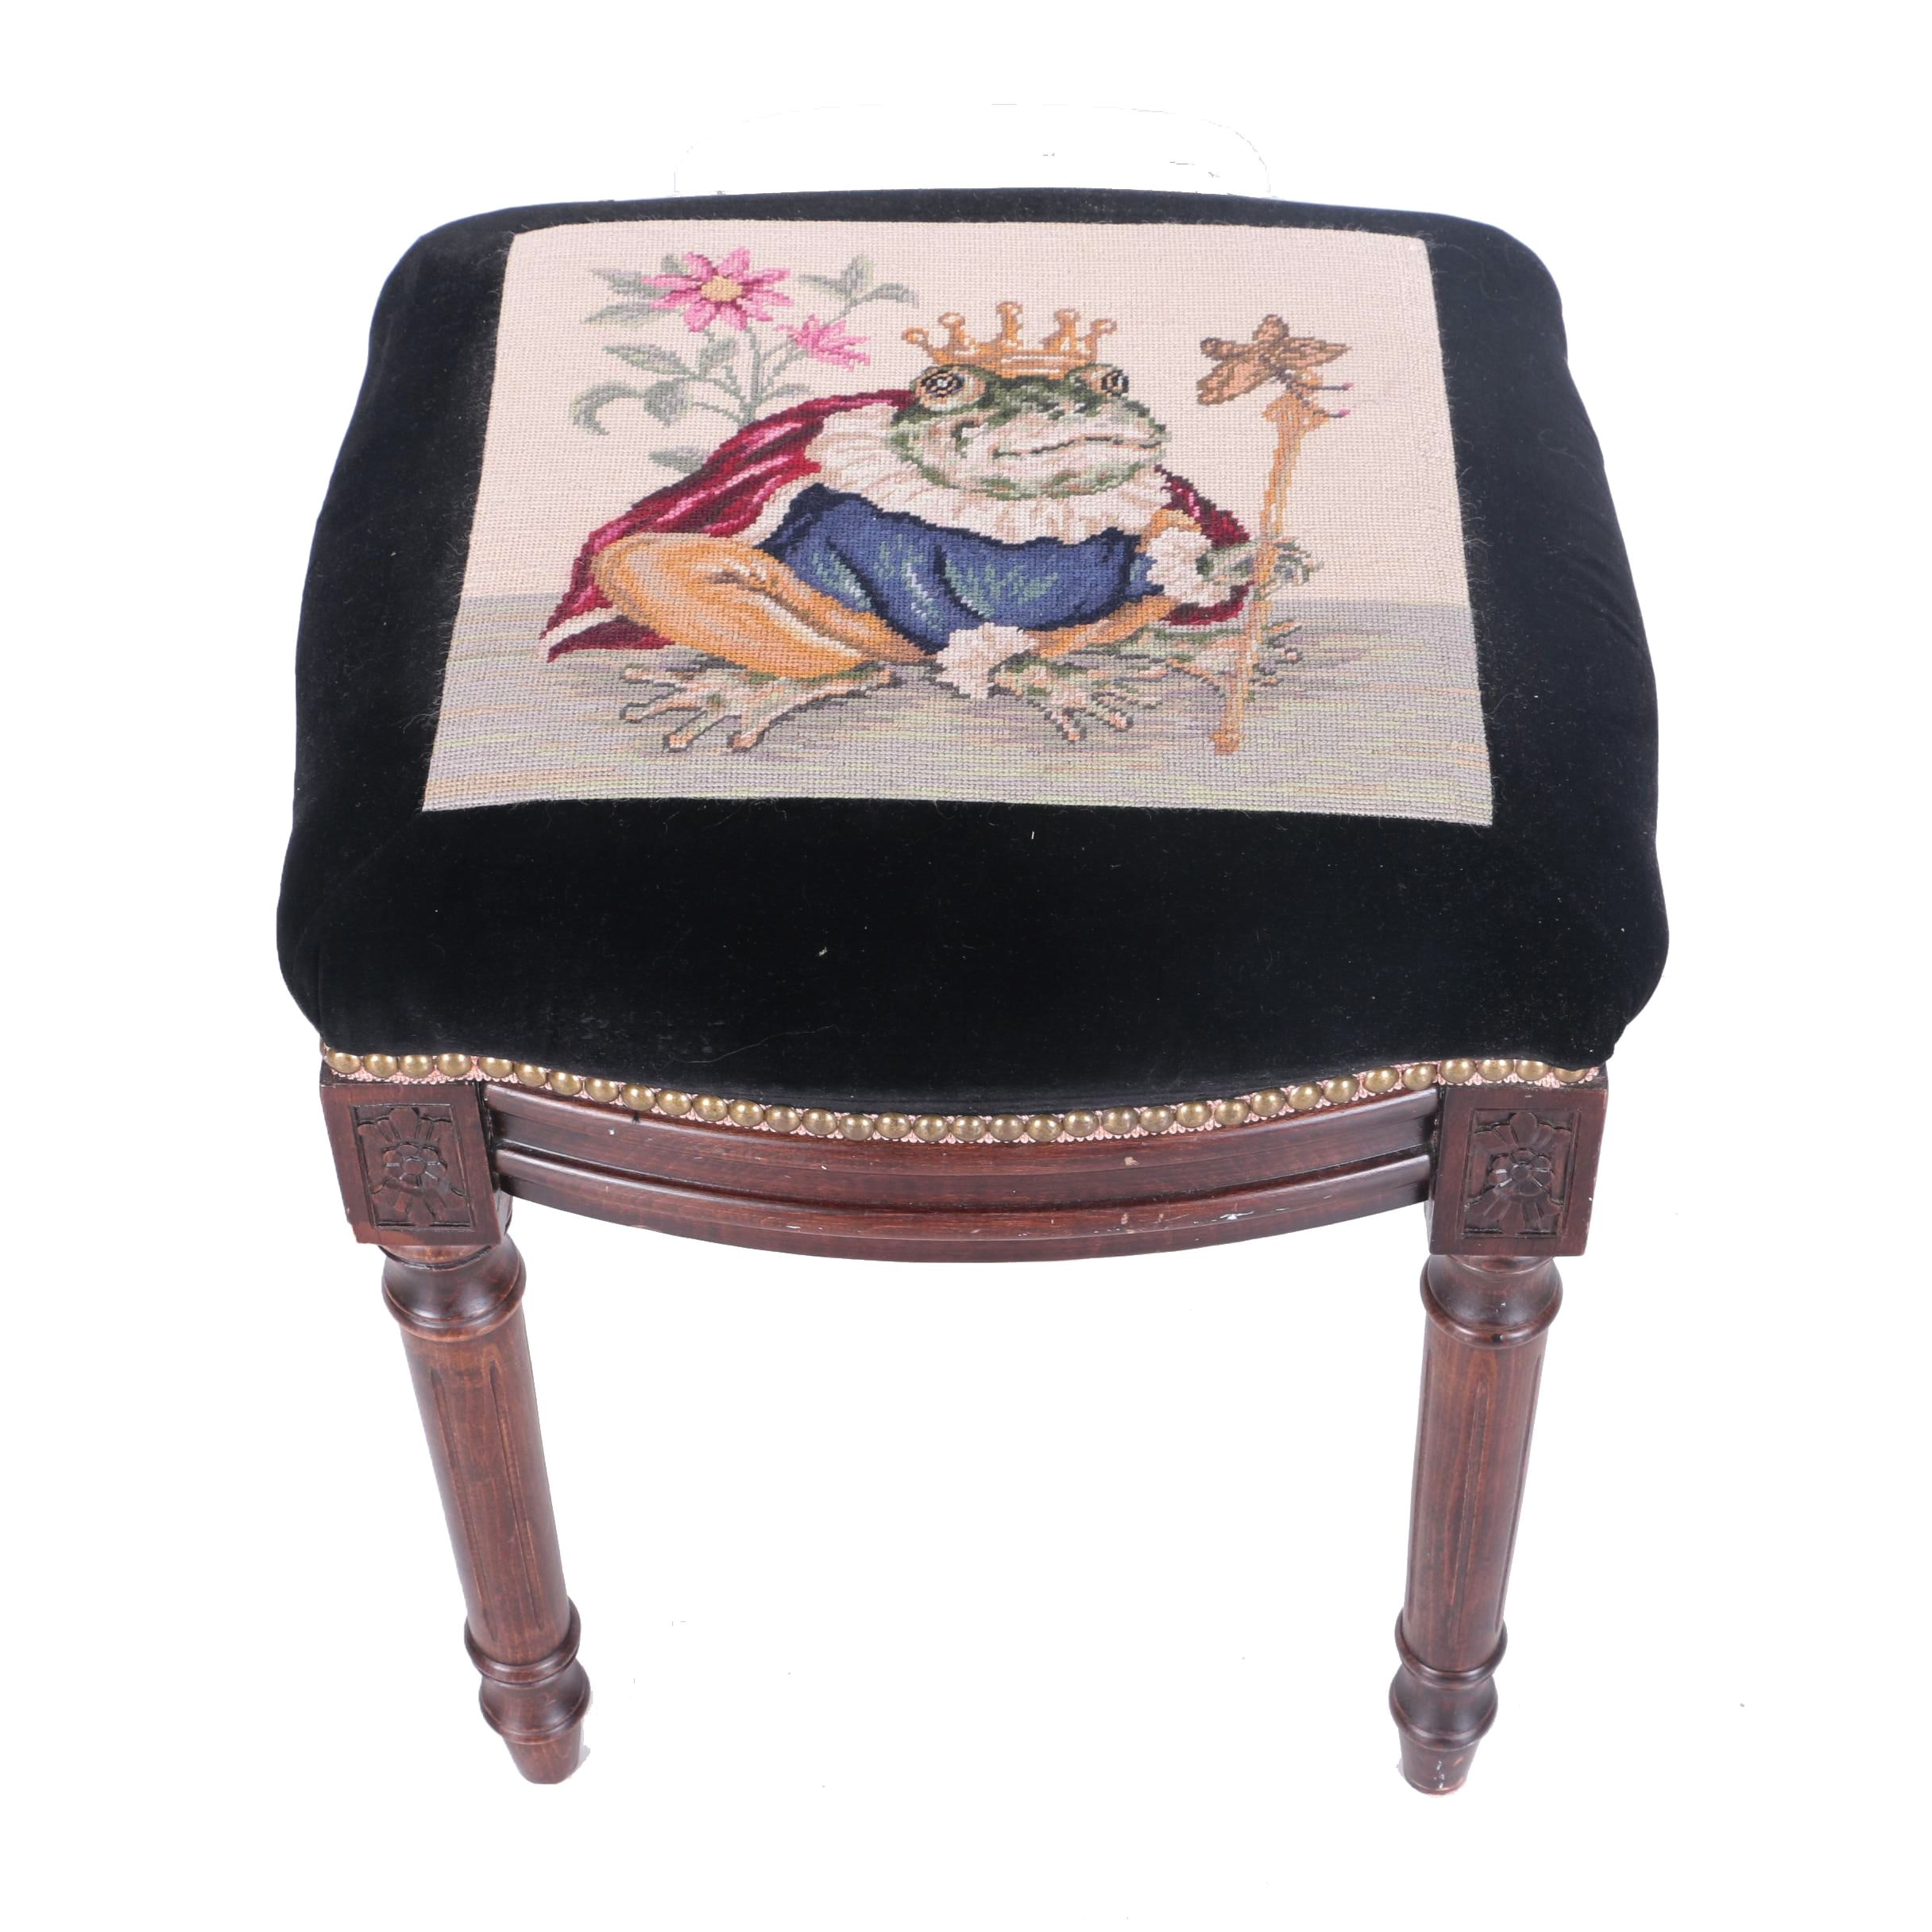 Louis XVI Style Stool With Frog Prince Needlepoint